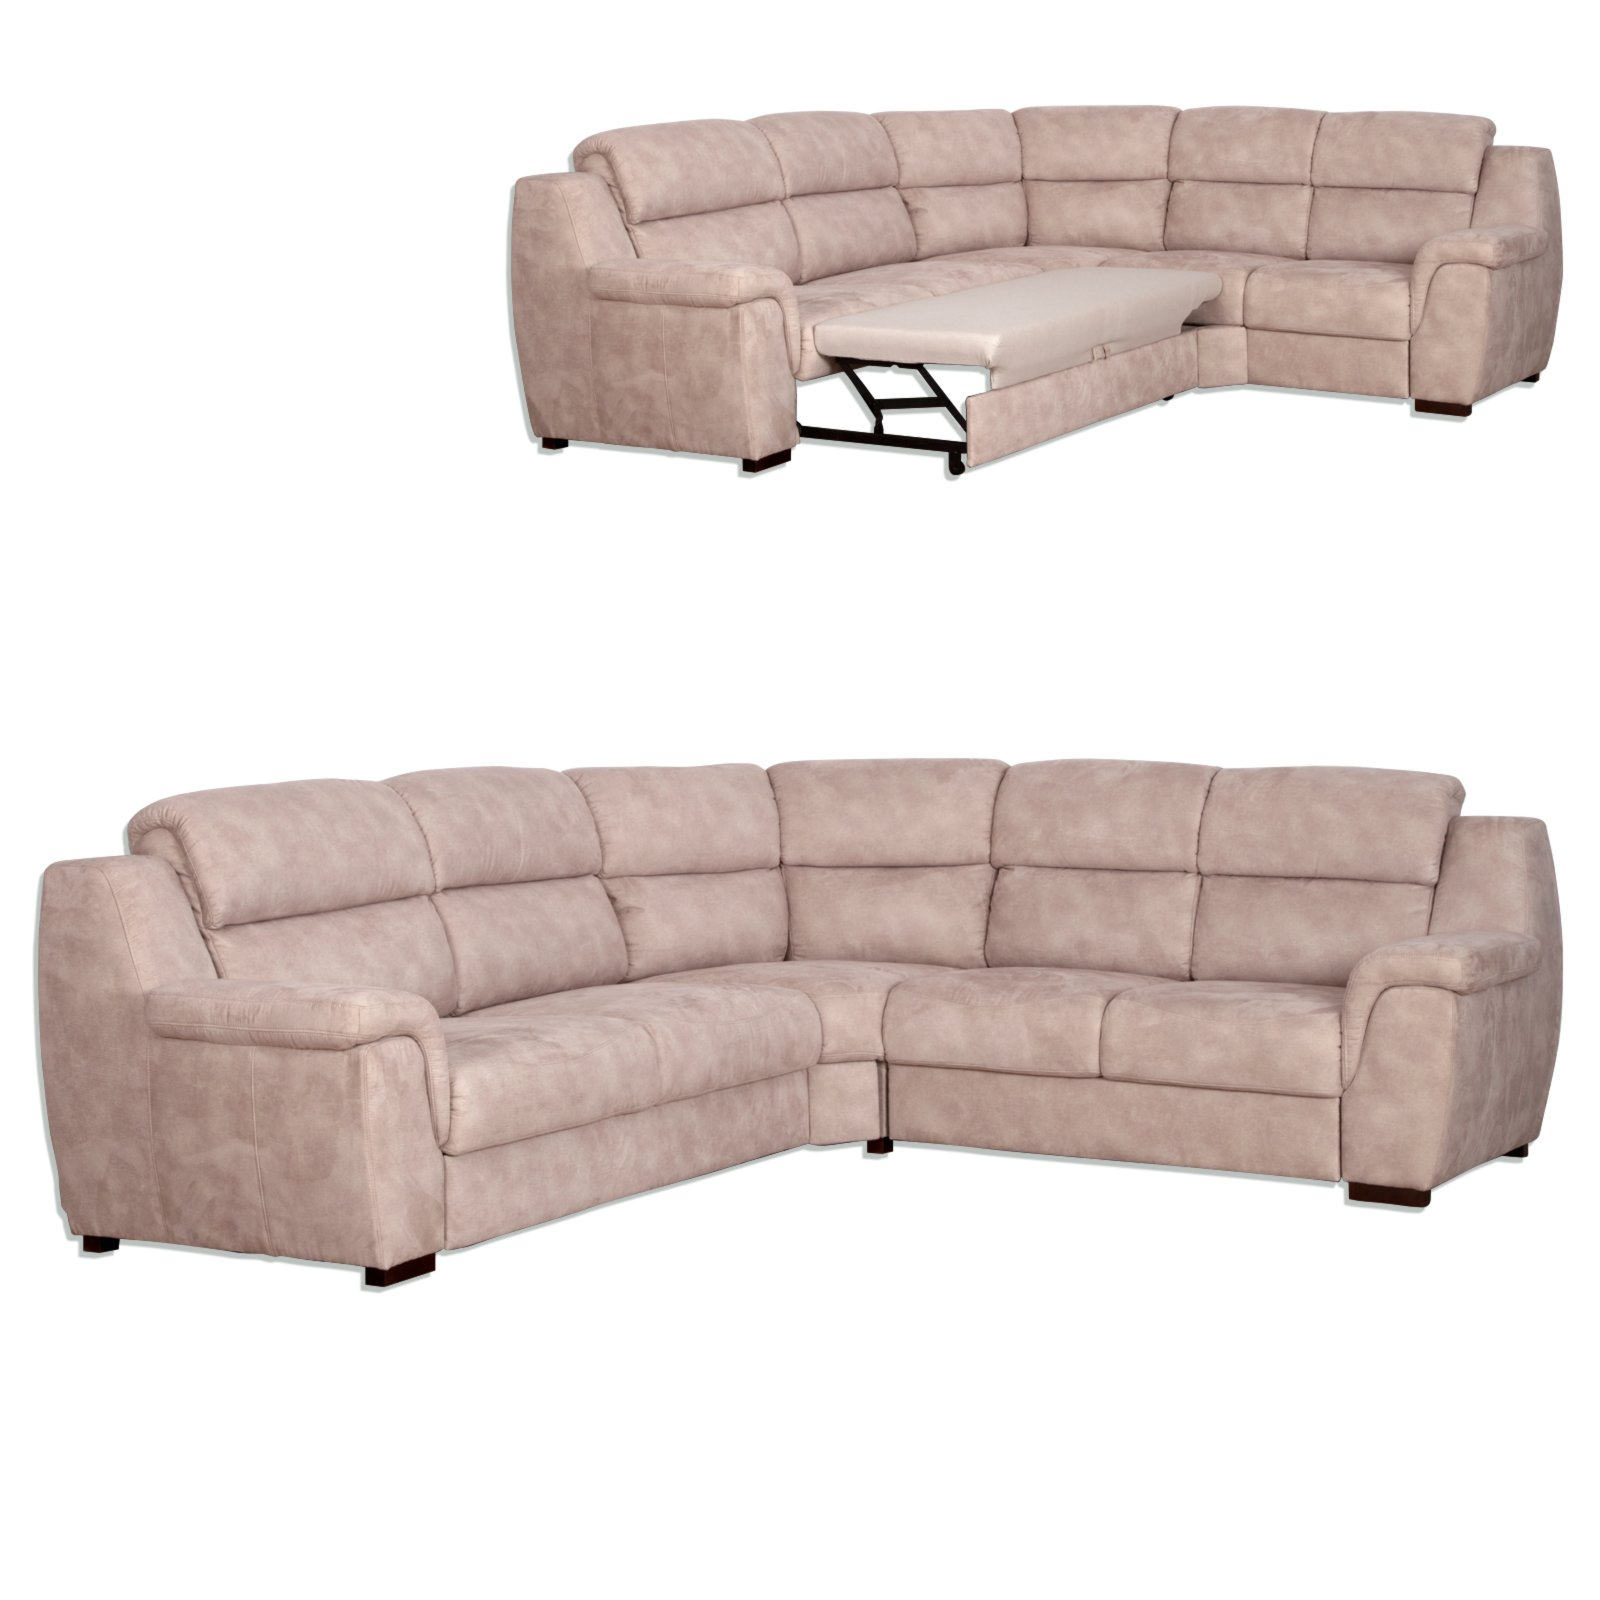 Roller Ecksofa Bounty Ecksofa Beige Perfect Img With Ecksofa Beige Free Switch Ecksofa